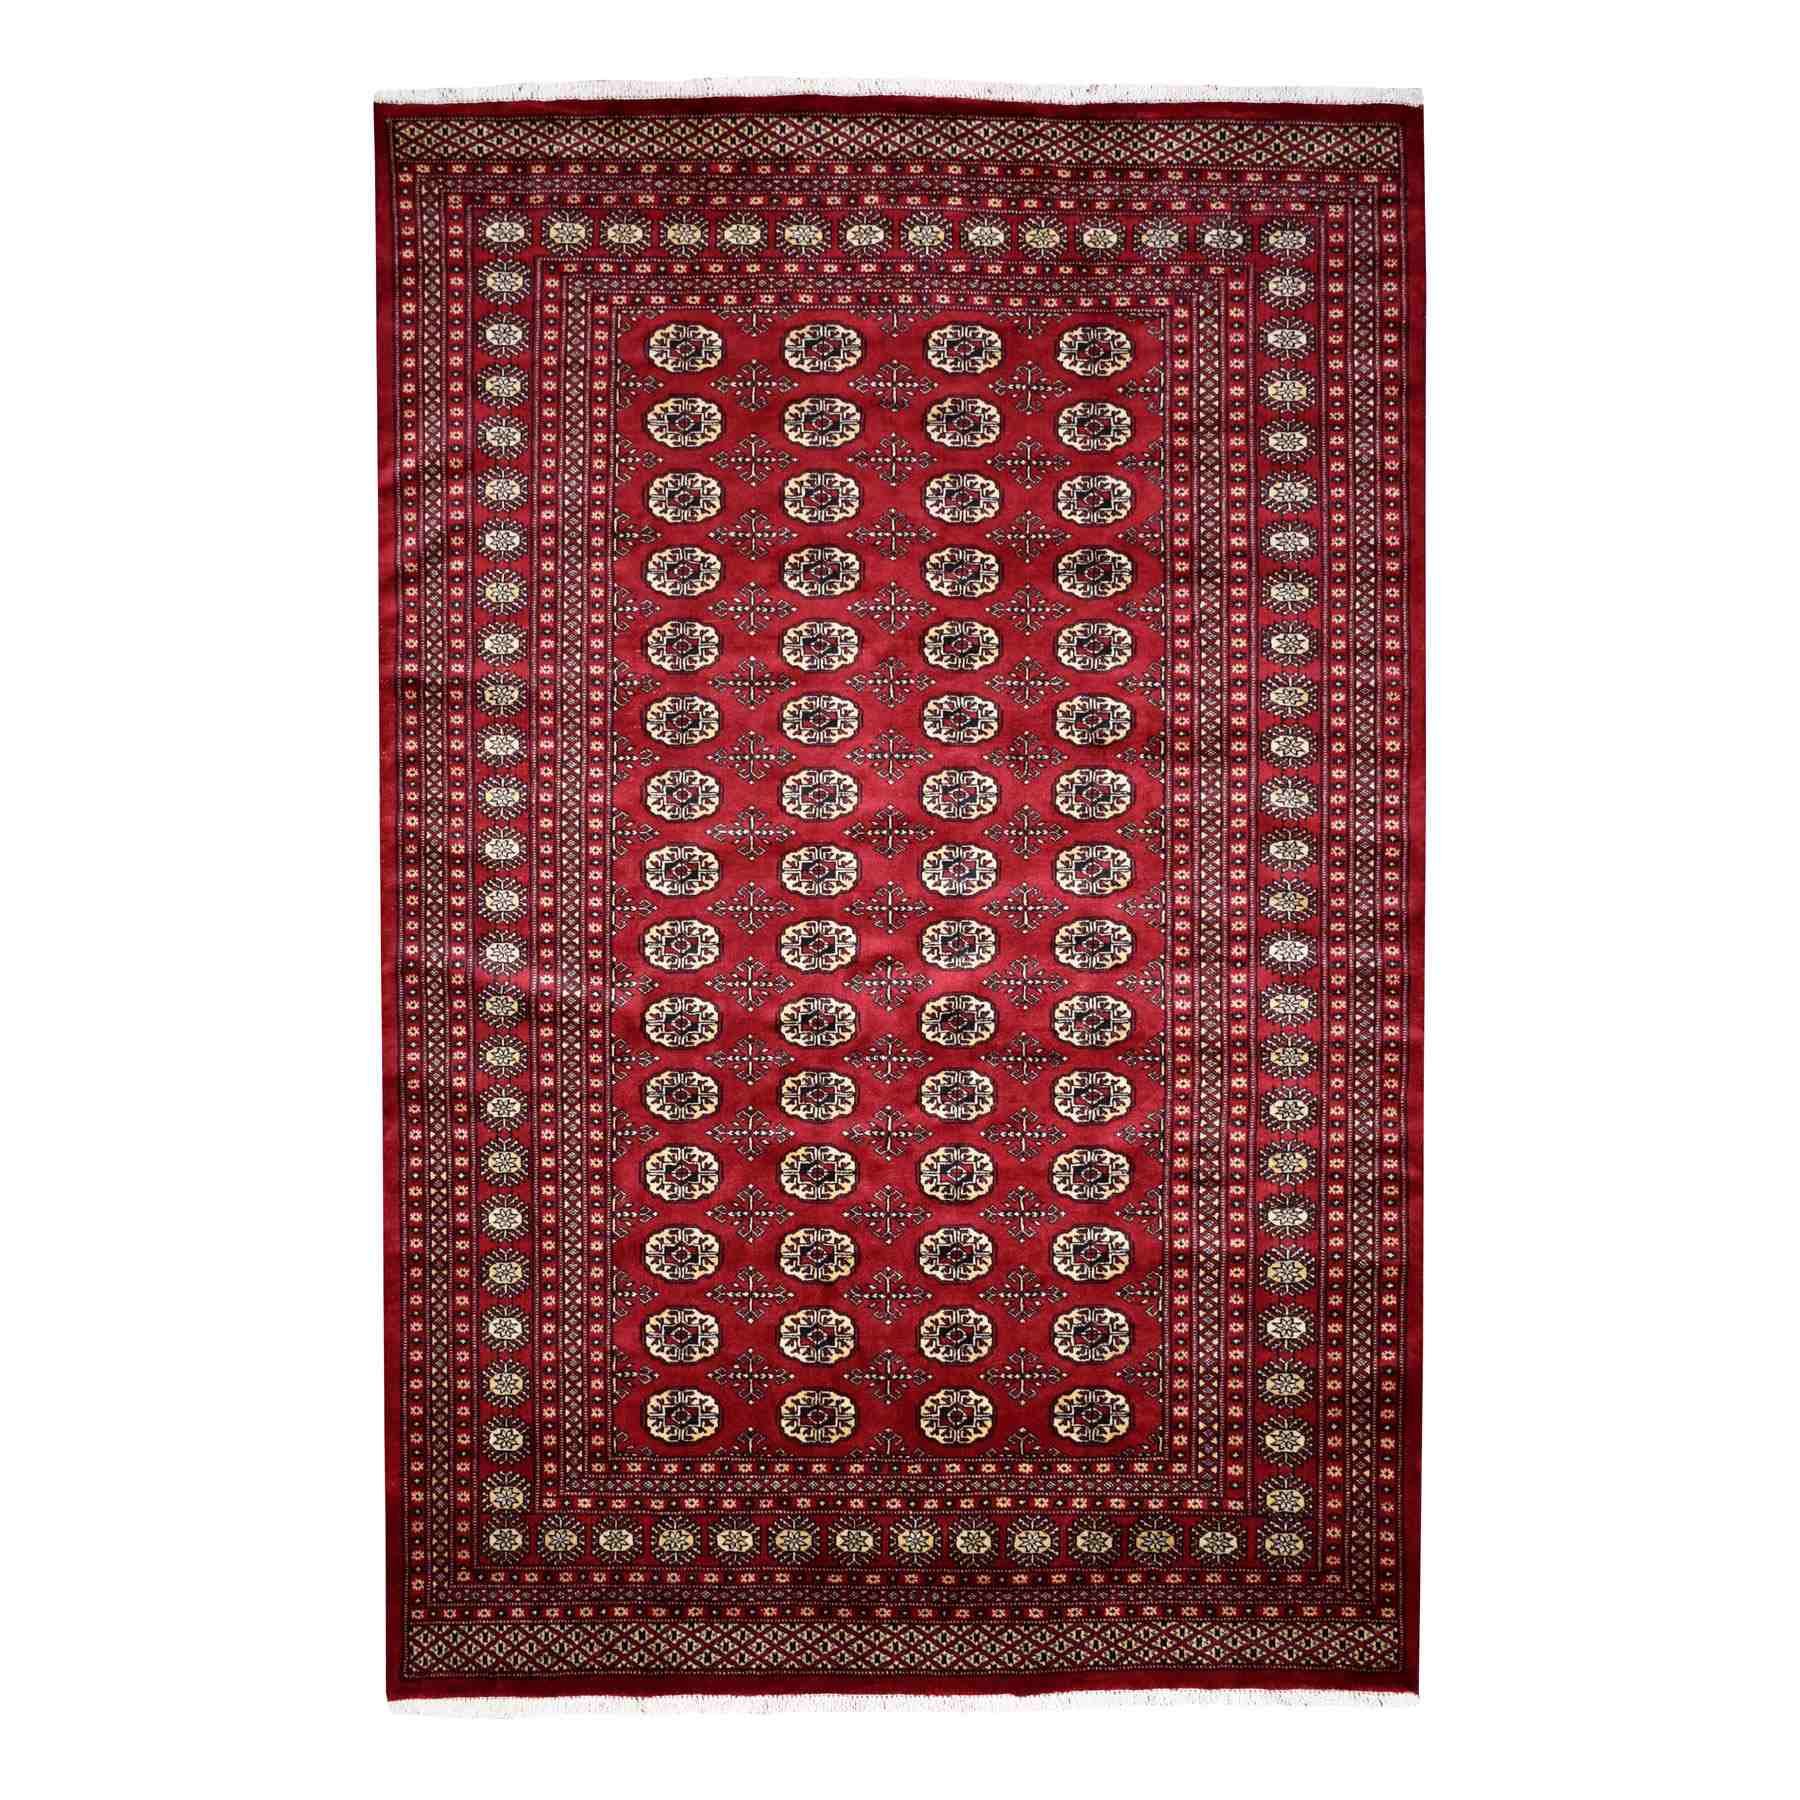 Nomadic And Village Collection Hand Knotted Red Rug No: 01110304